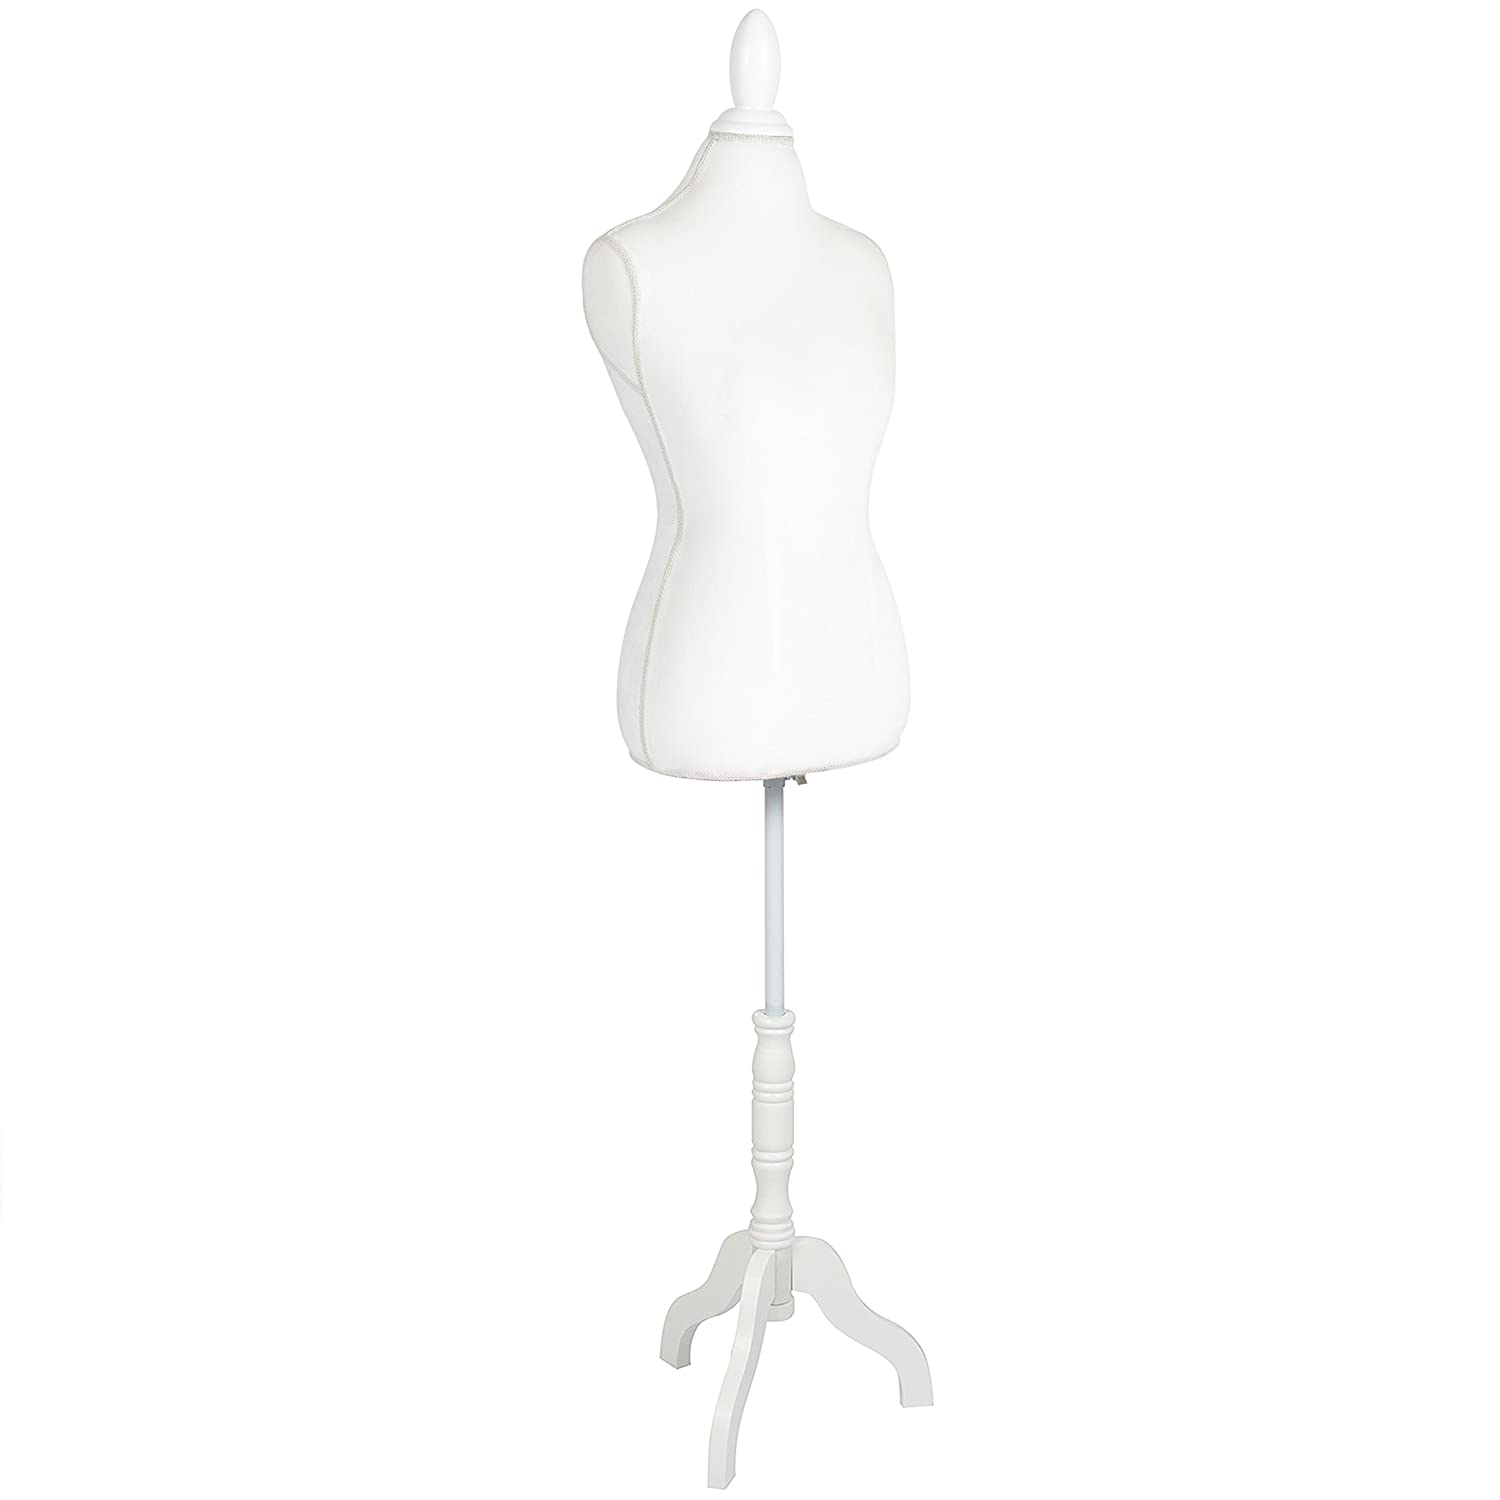 Best Choice Products Female Mannequin Torso Display w/Wooden Tripod Stand, Adjustable Height - White